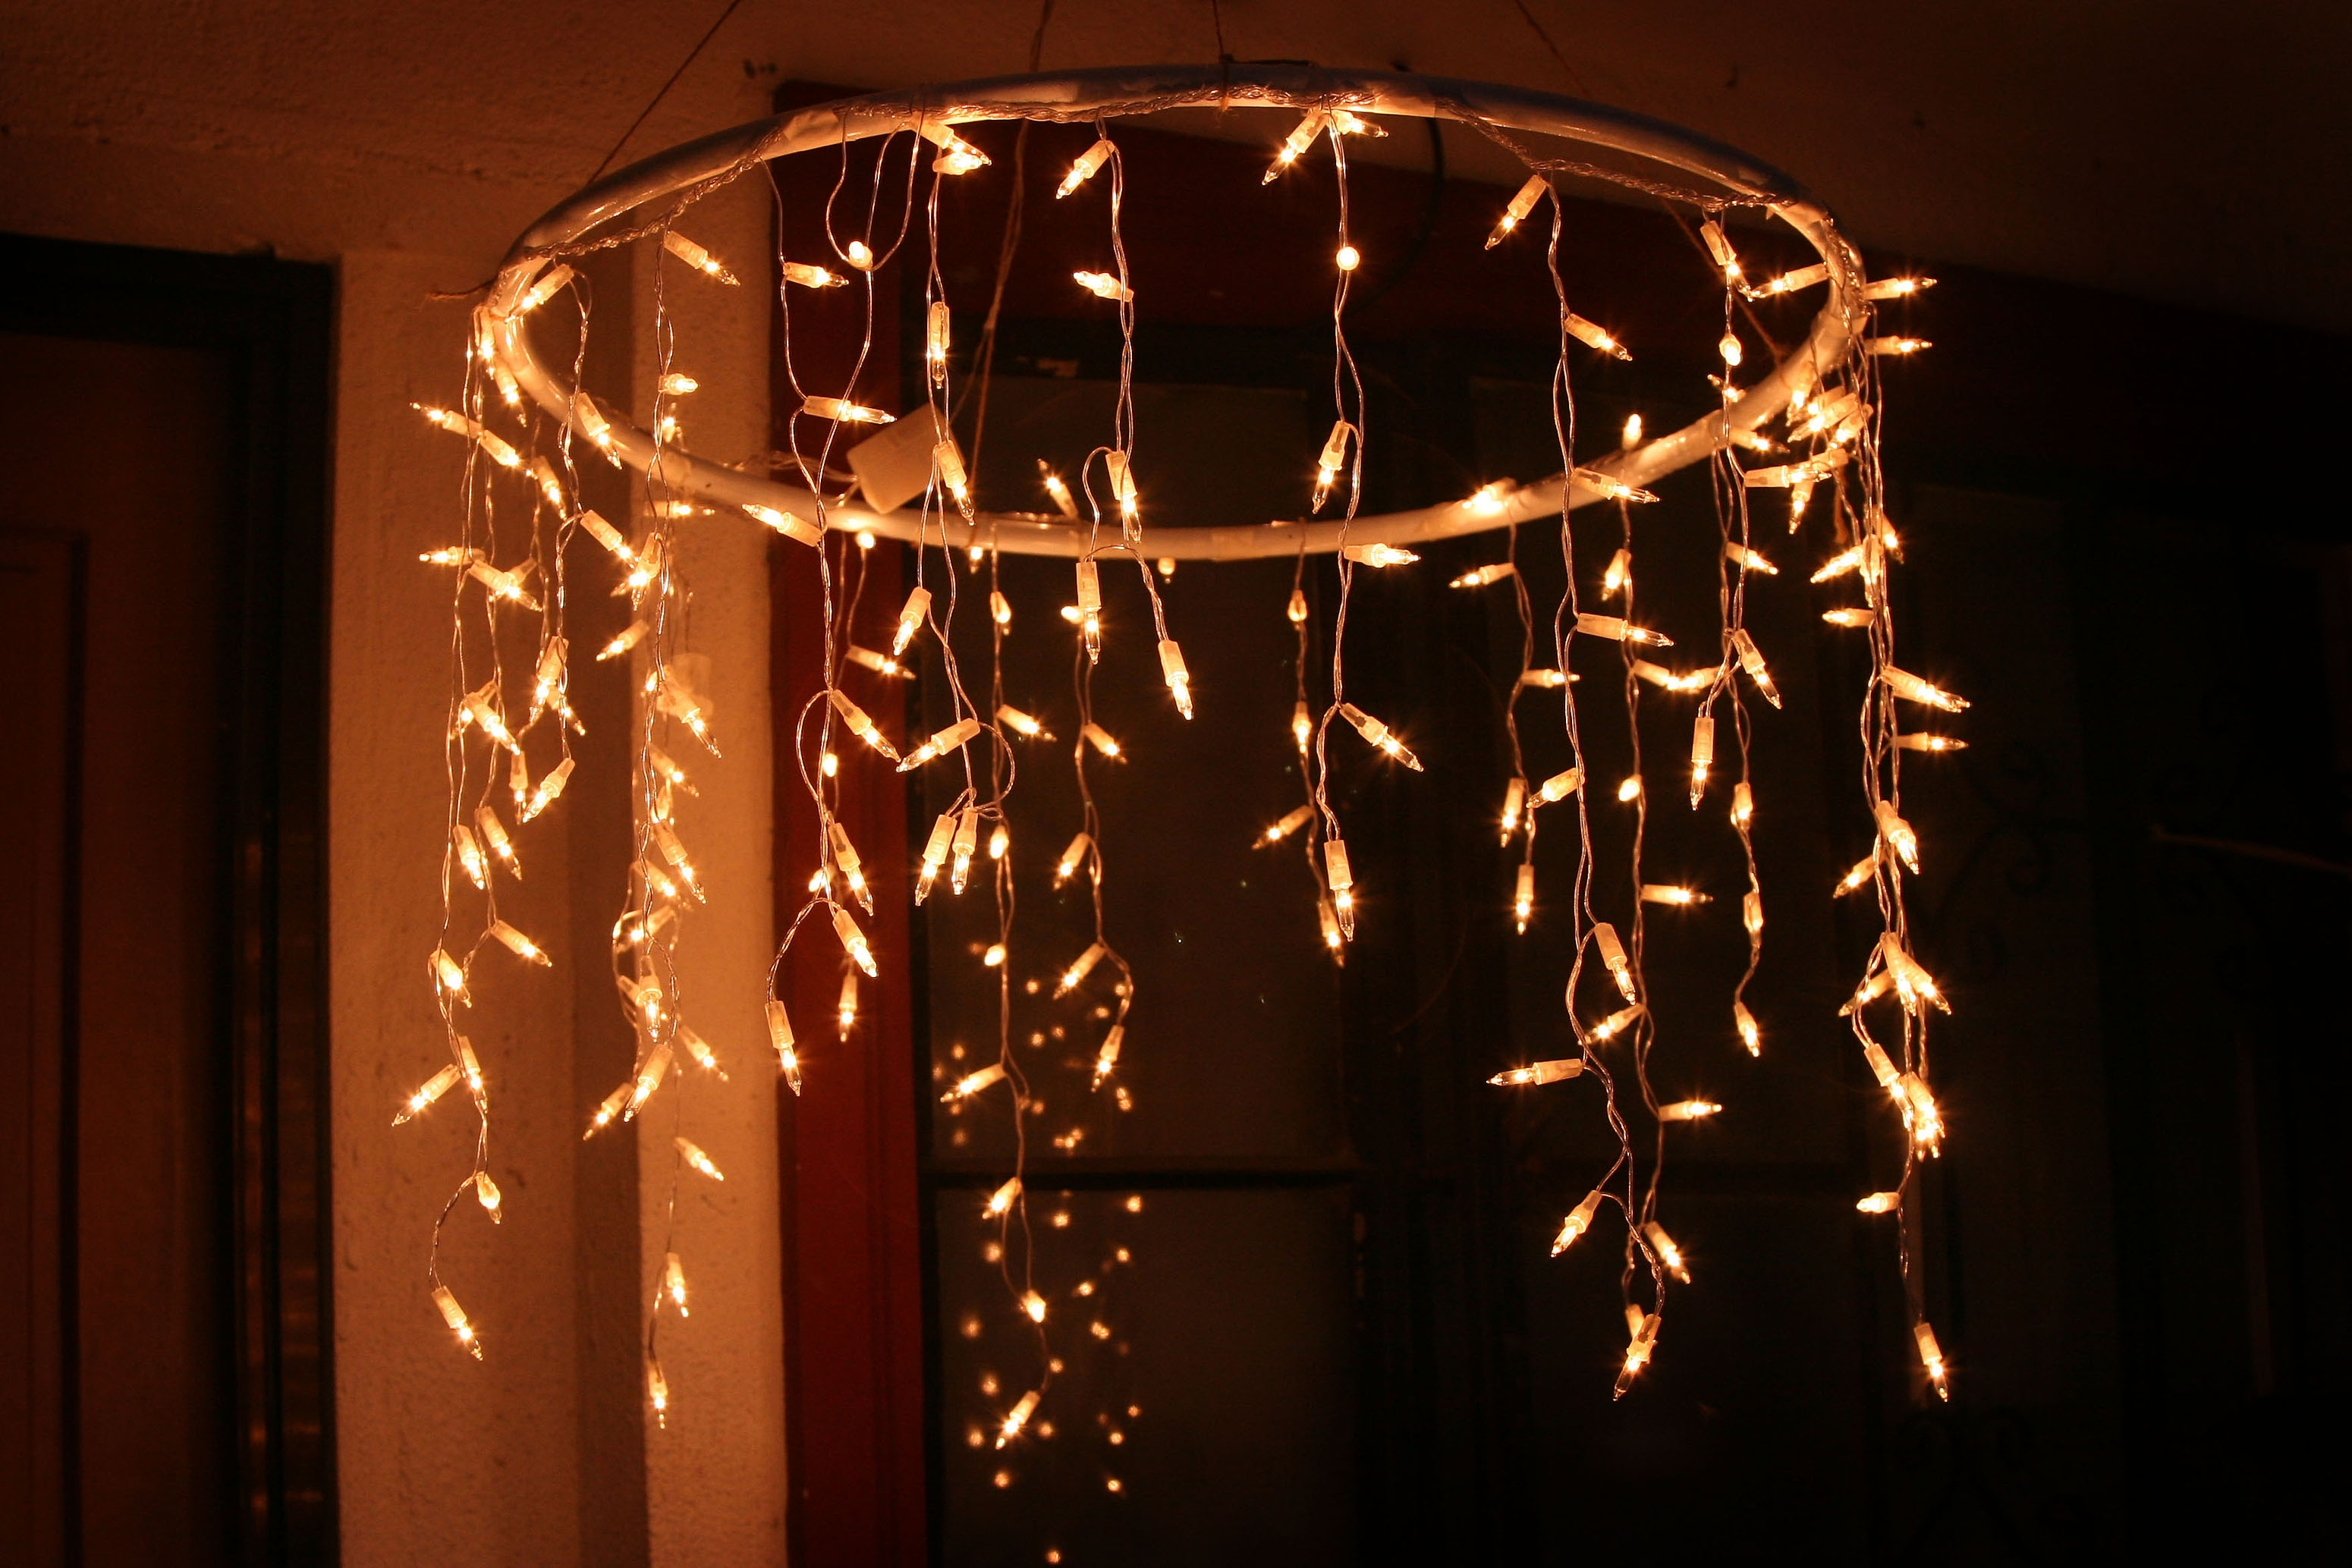 How To Make An Outdoor Chandelier With Icicle Christmas Lights With Outdoor Hanging Icicle Lights (#9 of 15)